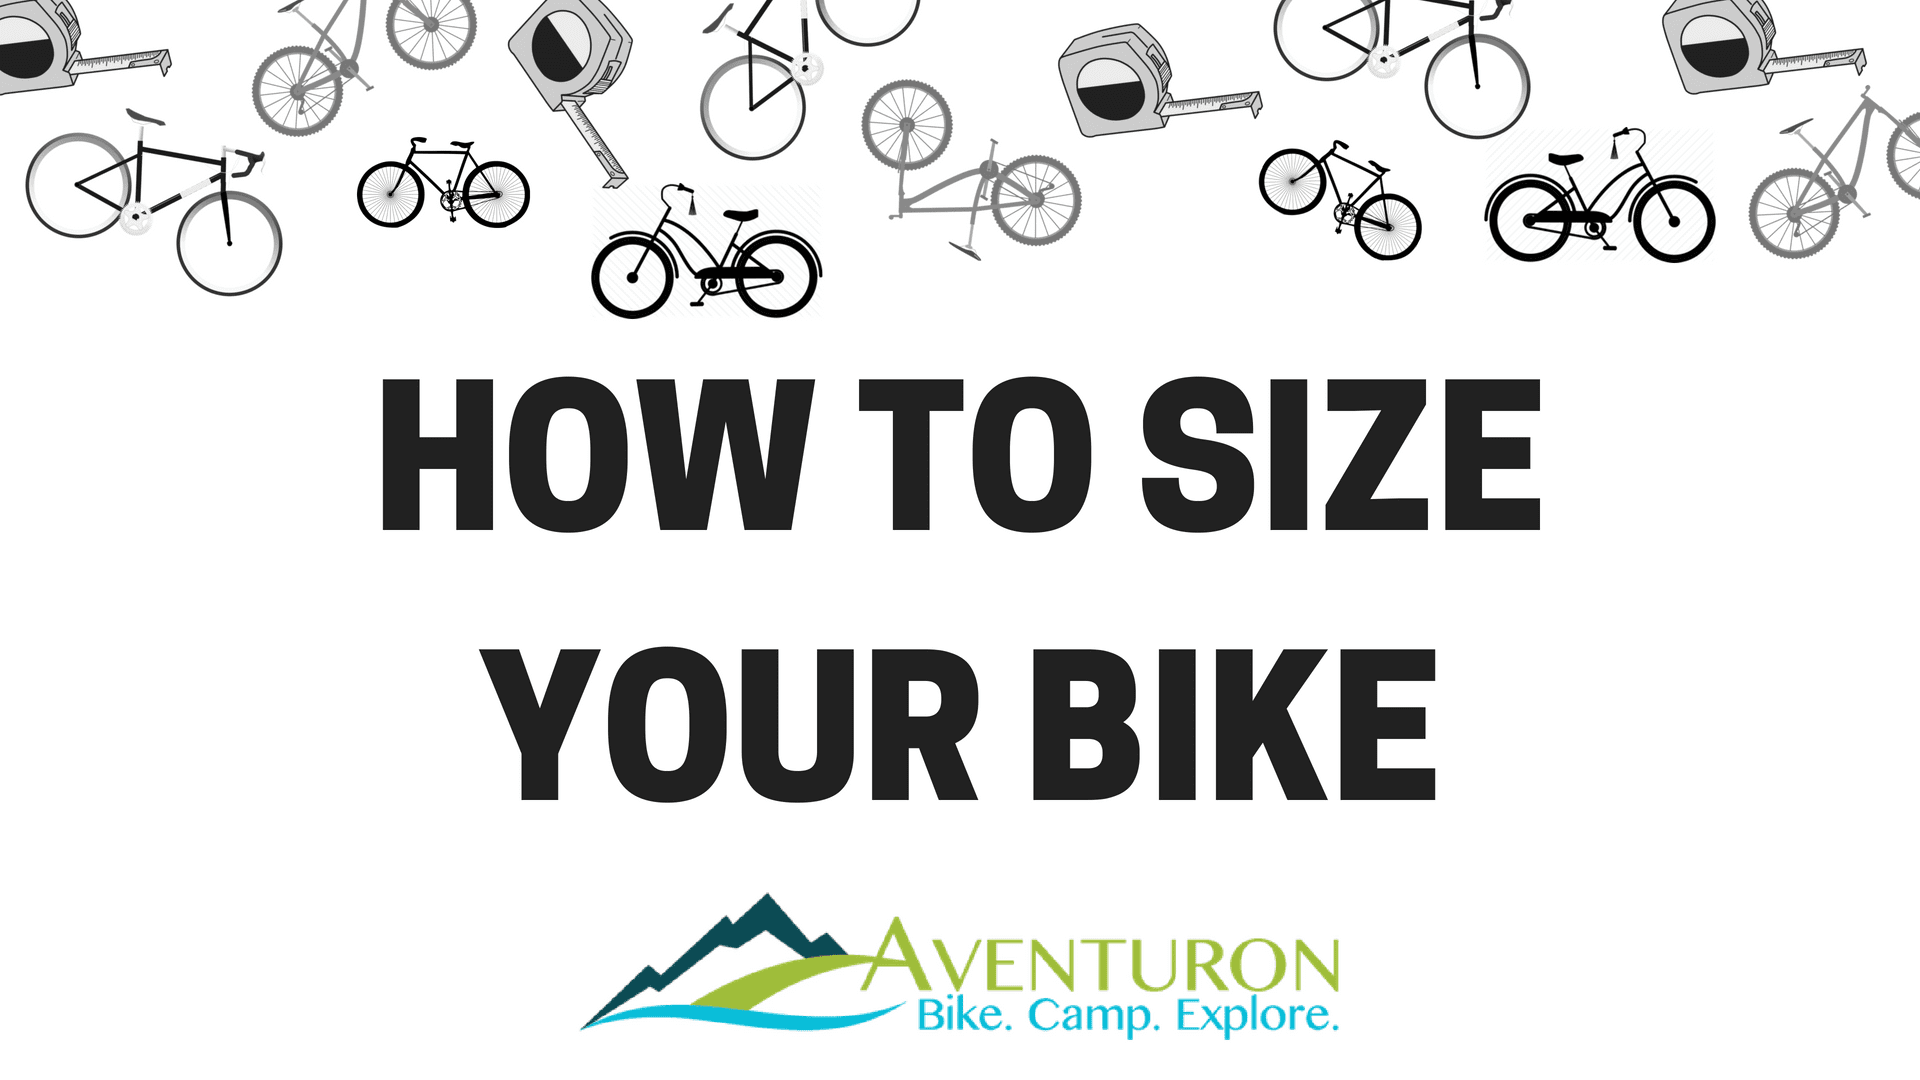 How to Size a Bike